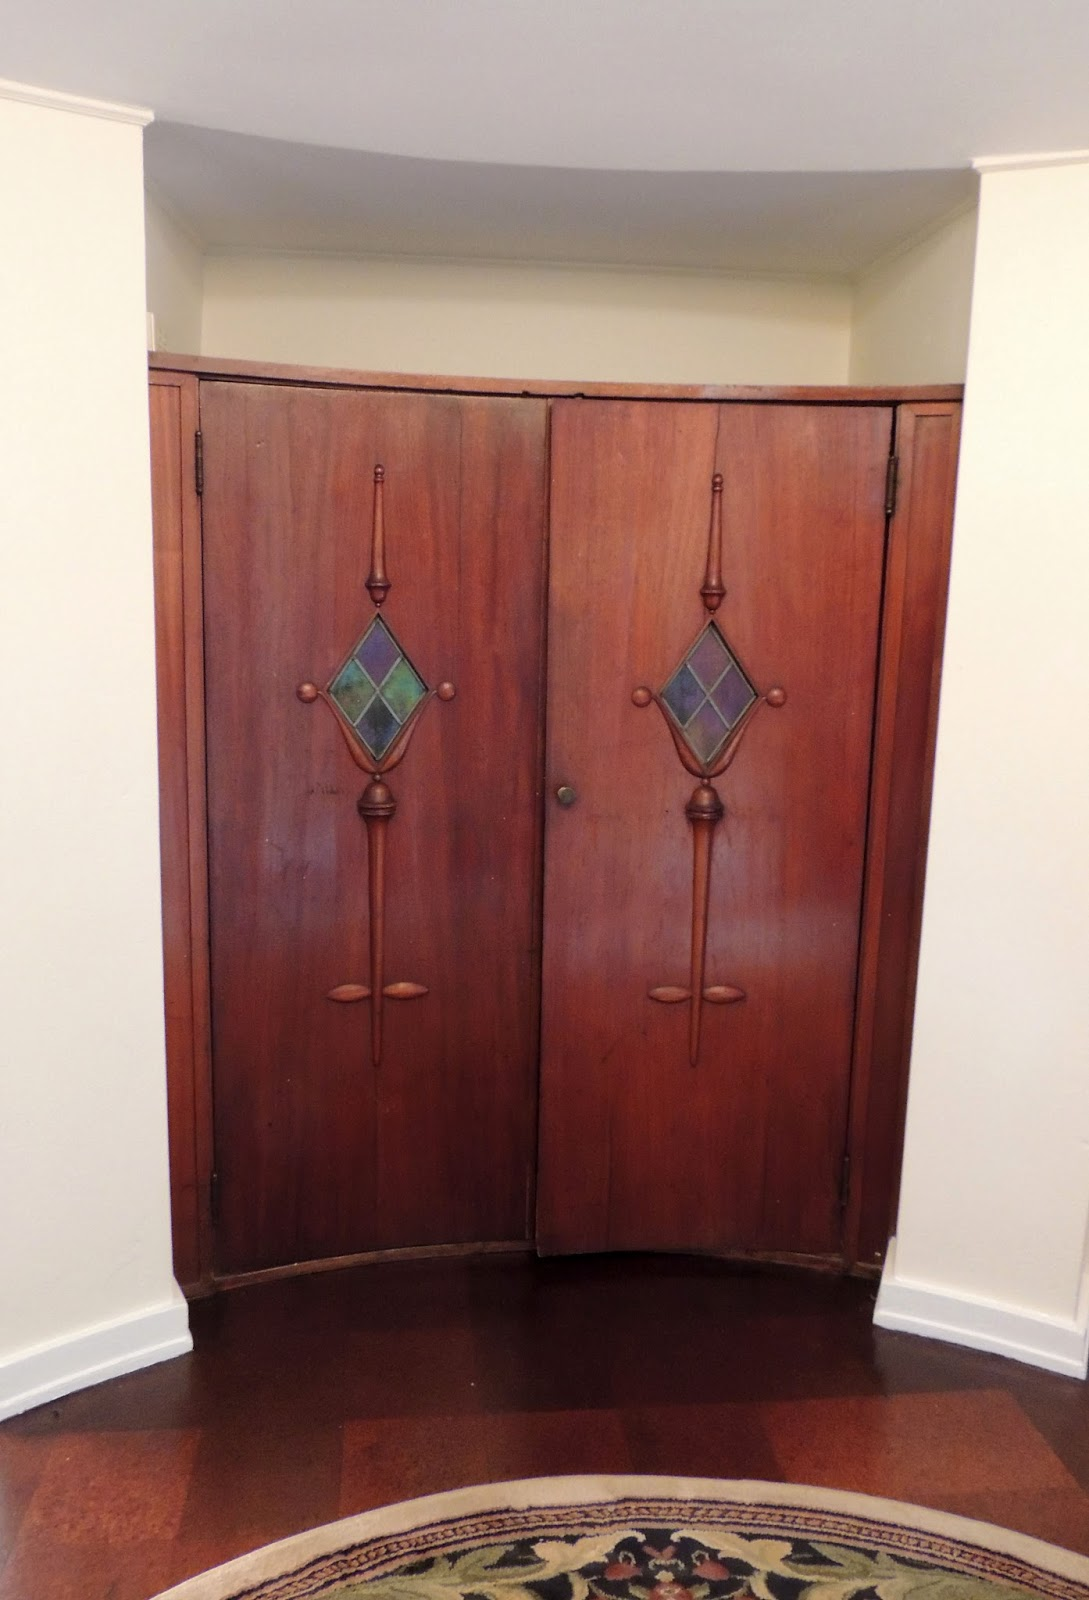 This Photo Shows A Built In Coat Closet The Amazing Round Foyer Its Doors Too Are Curved And Hold Stained Glass